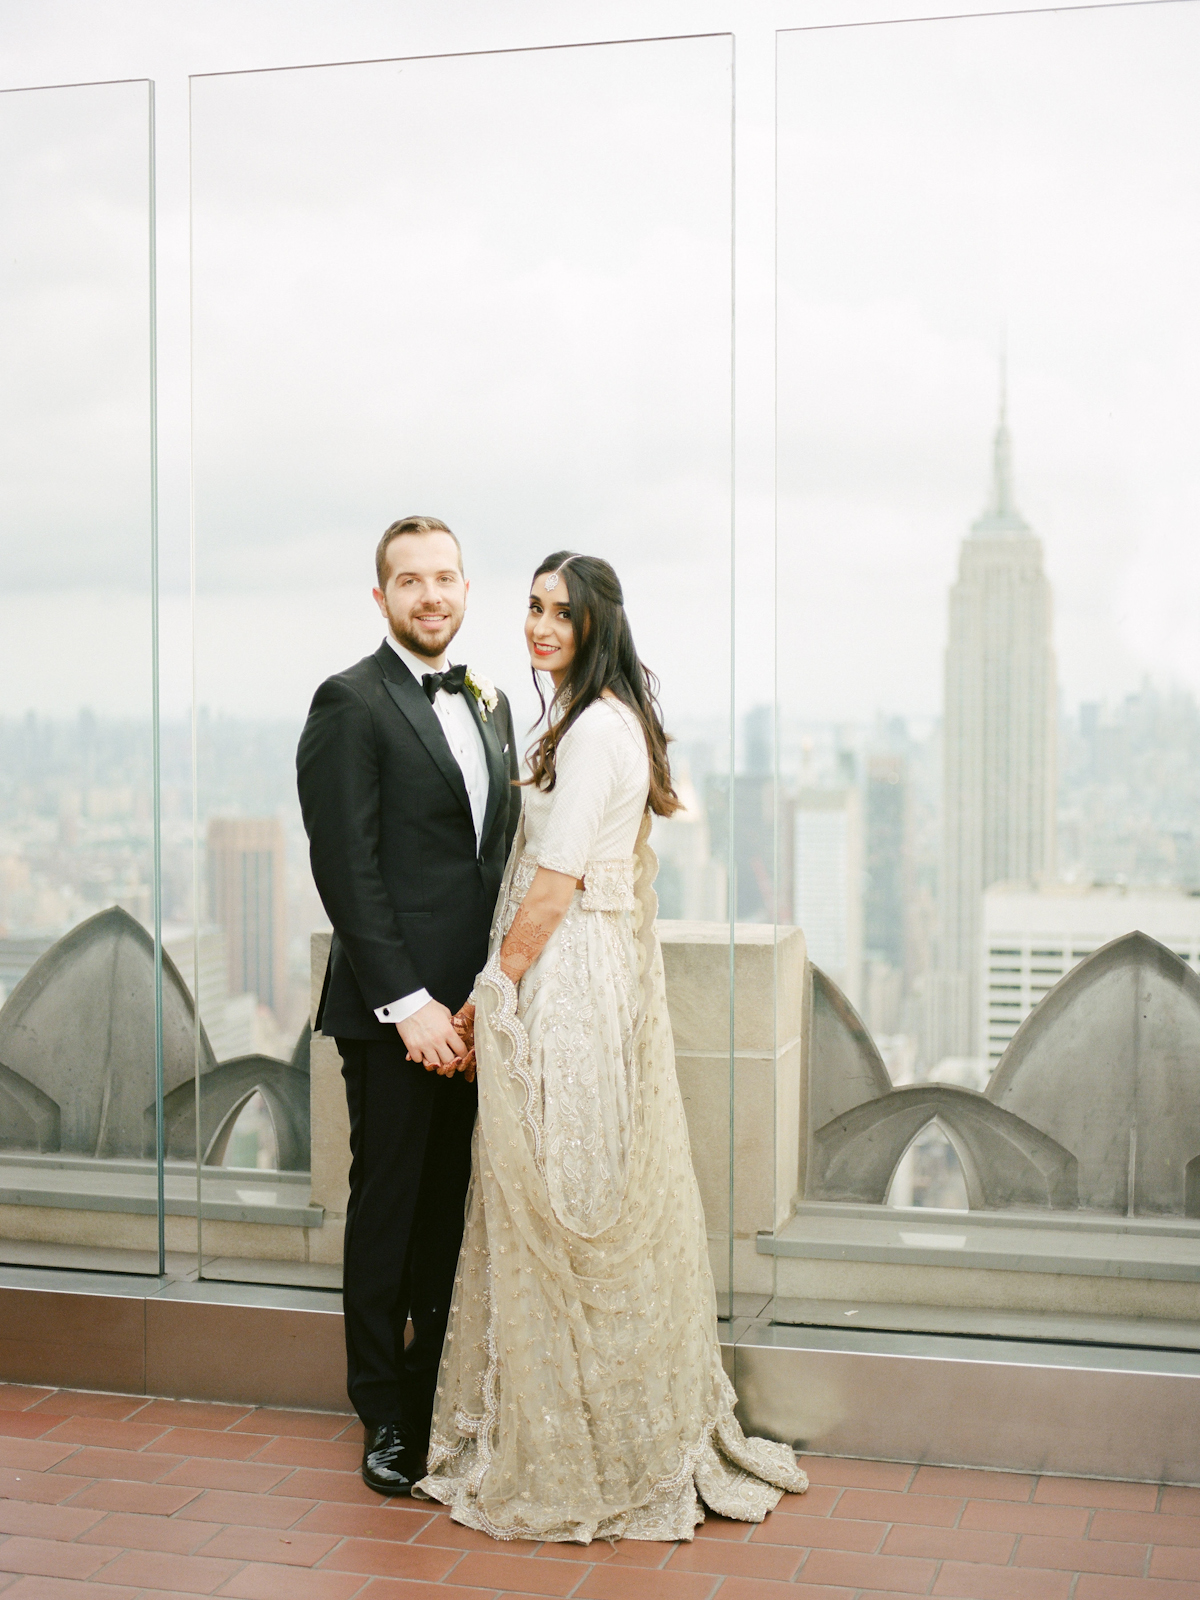 South asian bride and groom in tuxedo at Rainbow Room wedding